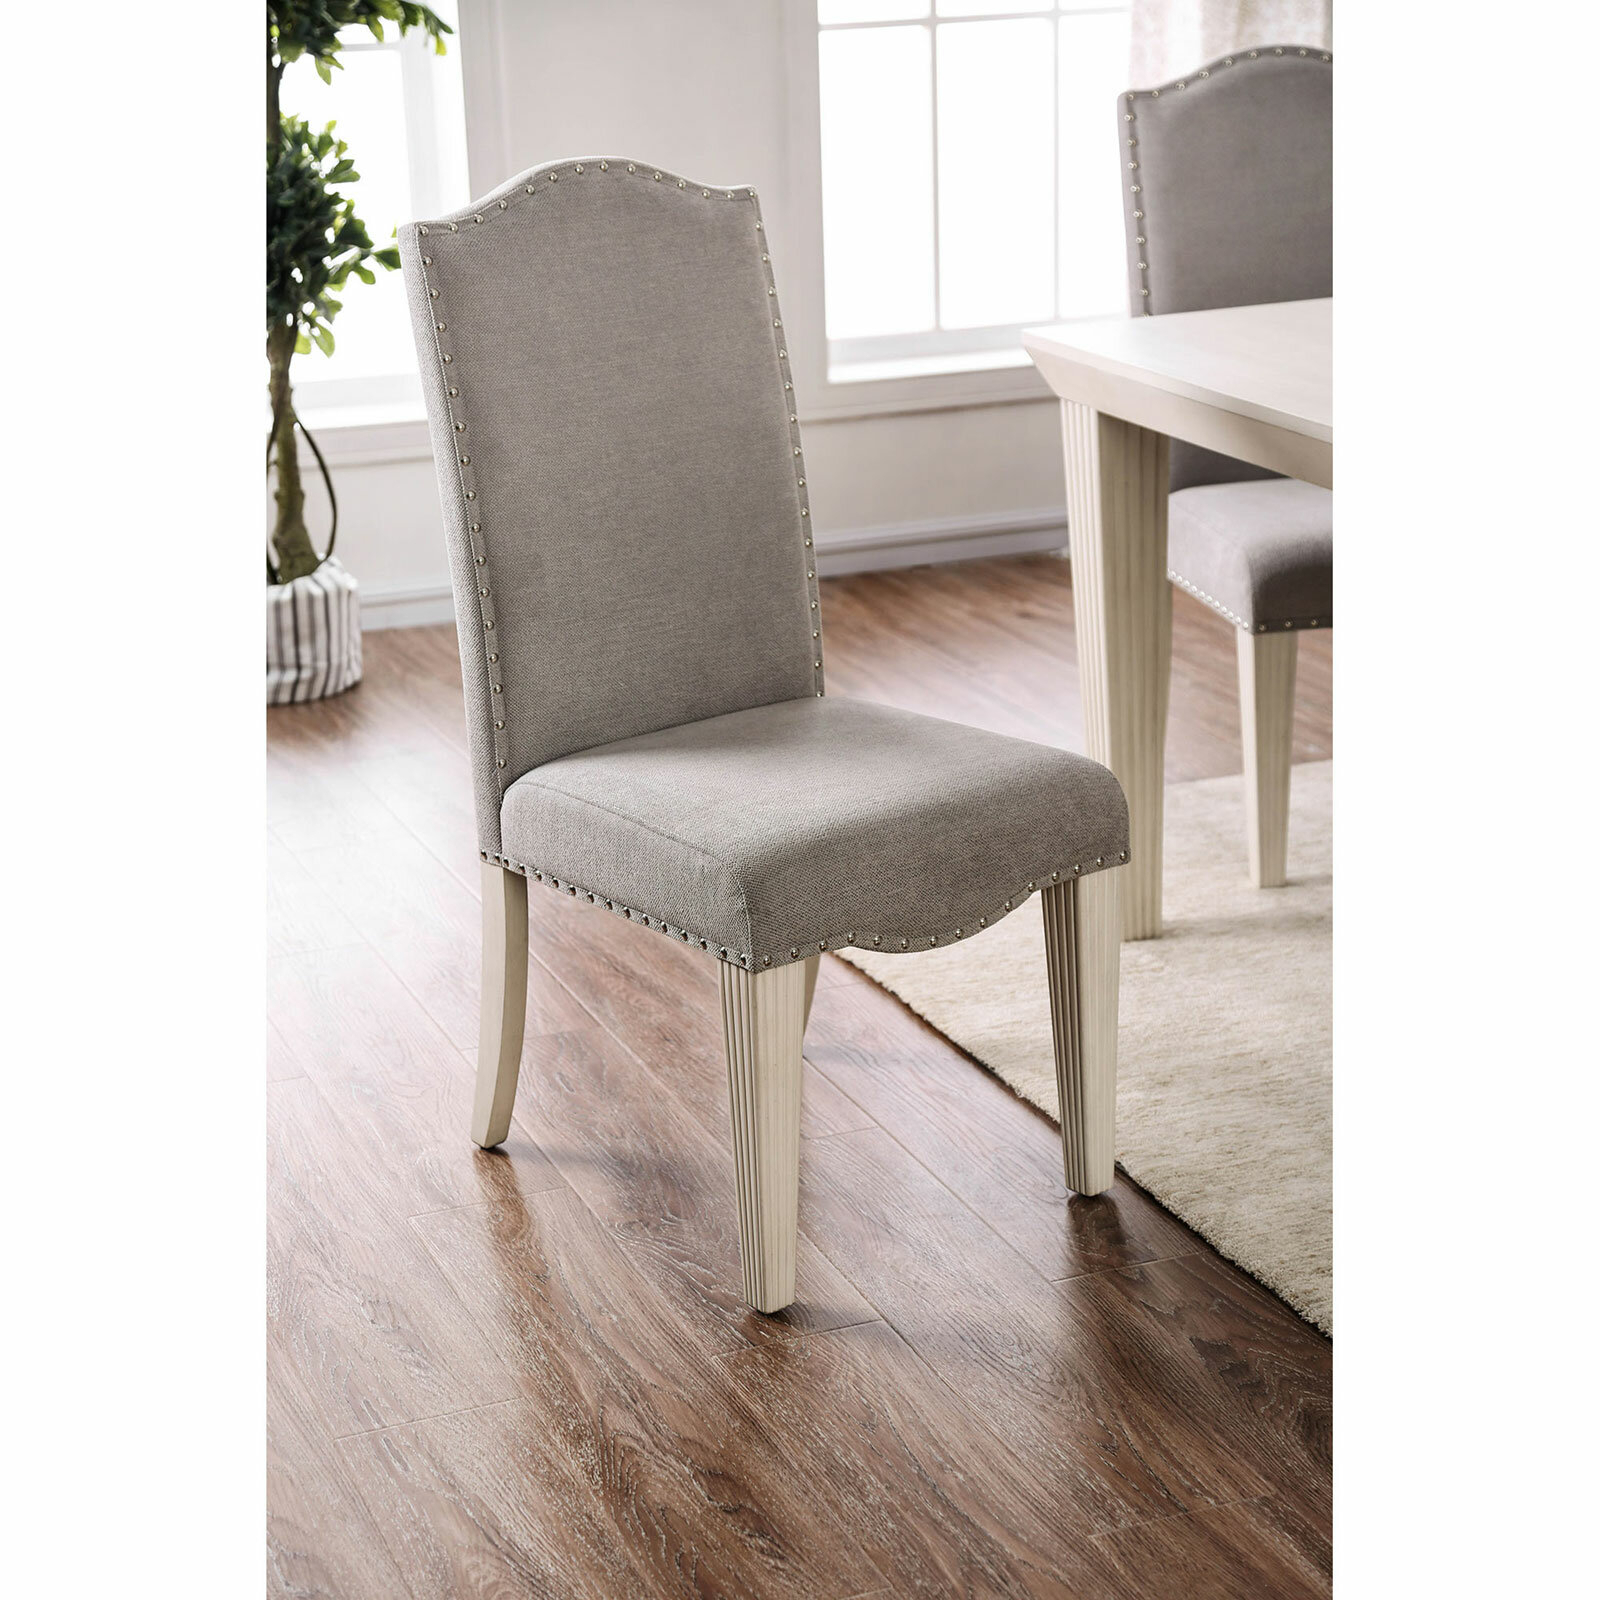 Dunphy Upholstered Dining Chair In Gray/Antique White Inside Bob Stripe Upholstered Dining Chairs (Set Of 2) (View 9 of 15)